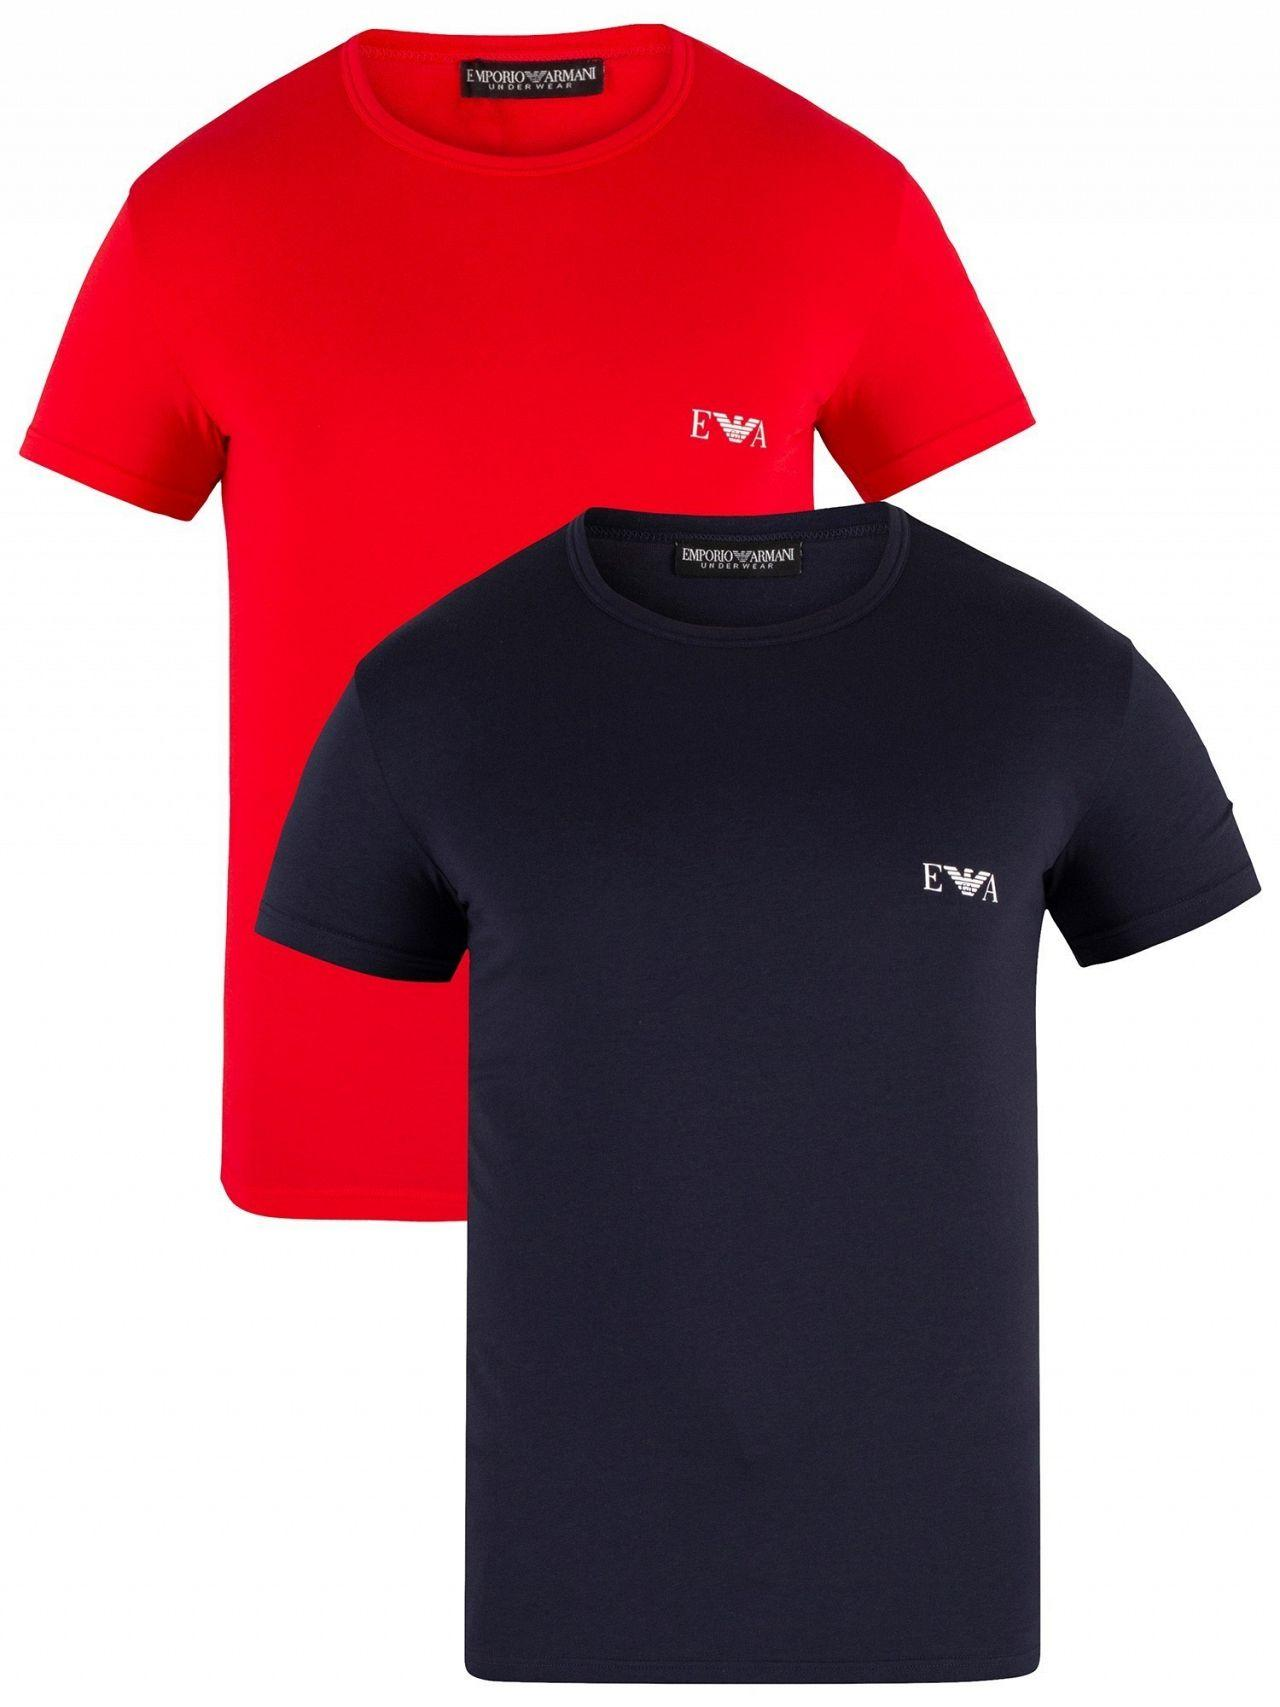 7fbe92e9b9ba4 Emporio Armani - Red marine 2 Pack Crew T-shirts for Men - Lyst. View  fullscreen